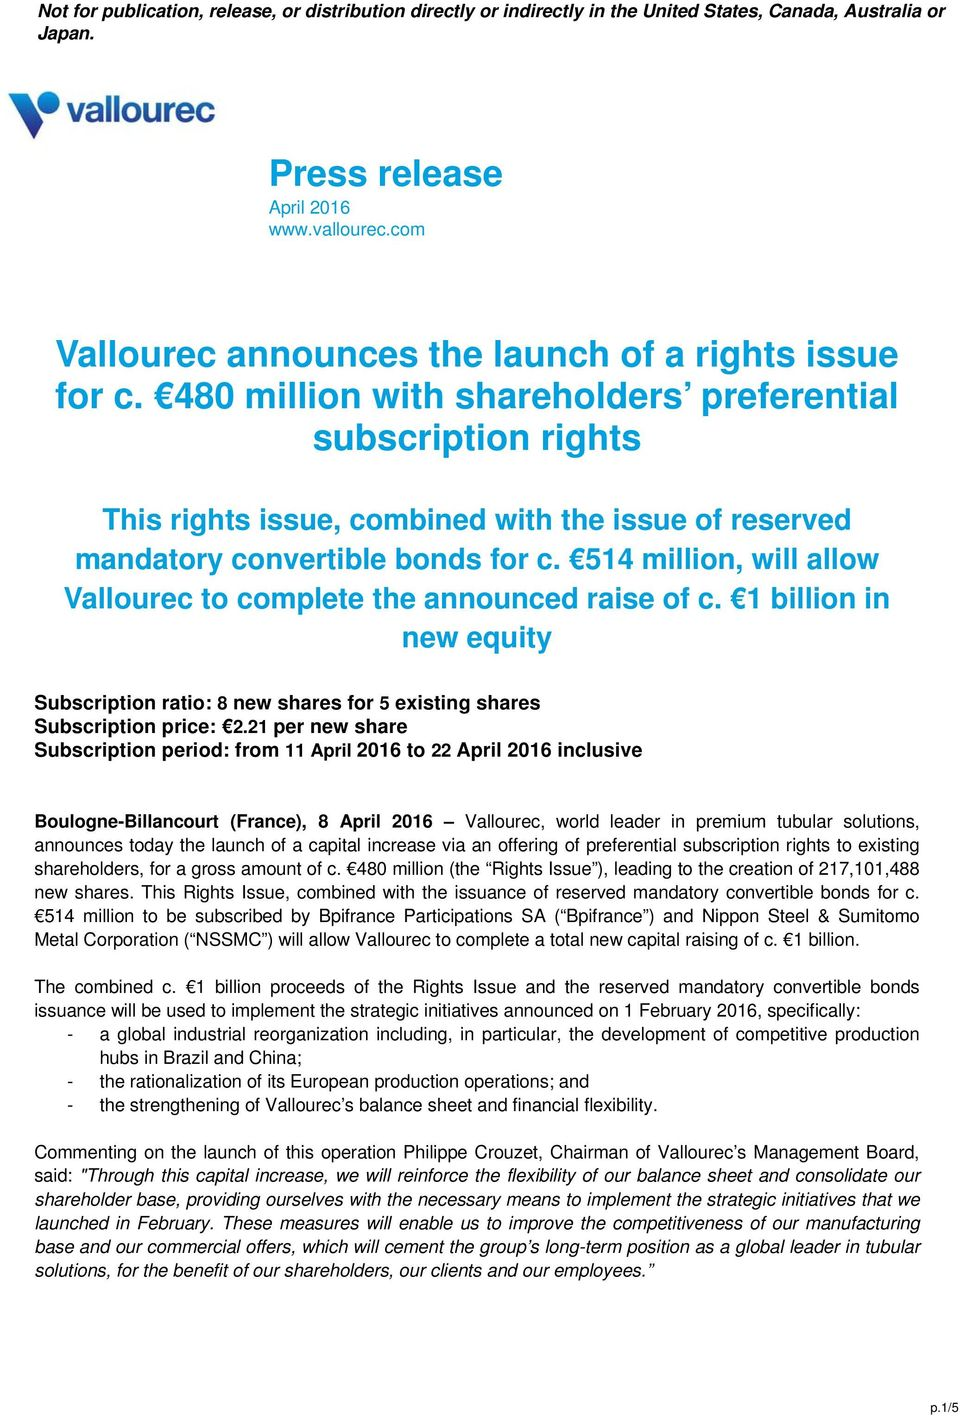 514 million, will allow Vallourec to complete the announced raise of c. 1 billion in new equity Subscription ratio: 8 new shares for 5 existing shares Subscription price: 2.